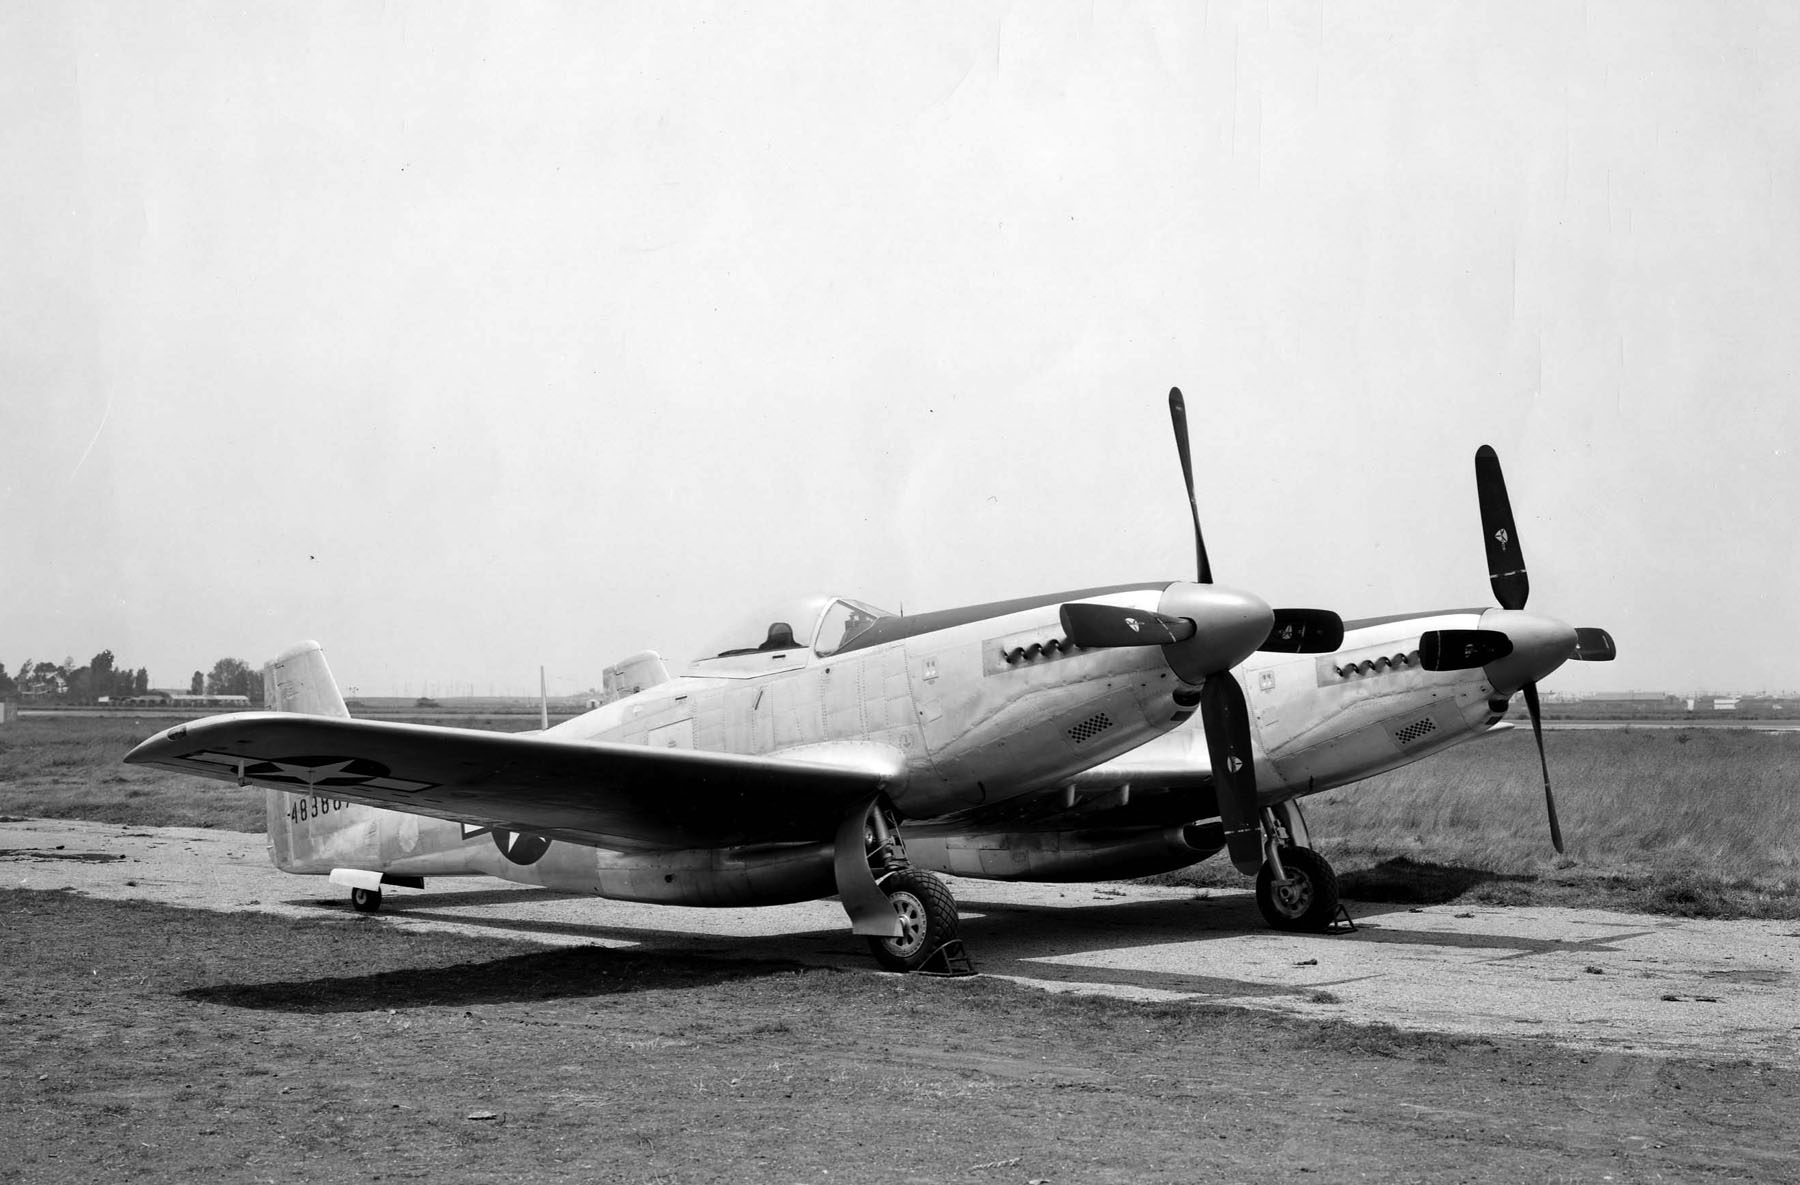 A picture of #44-83887 prior to its first flight with the left-hand turner on the left-hand fuselage and the right-hand turner on the right-hand fuselage with upsweeping props. This propeller configuration is what created the unacceptable stall situation during the initial test flight. (photo via Tom Reilly)